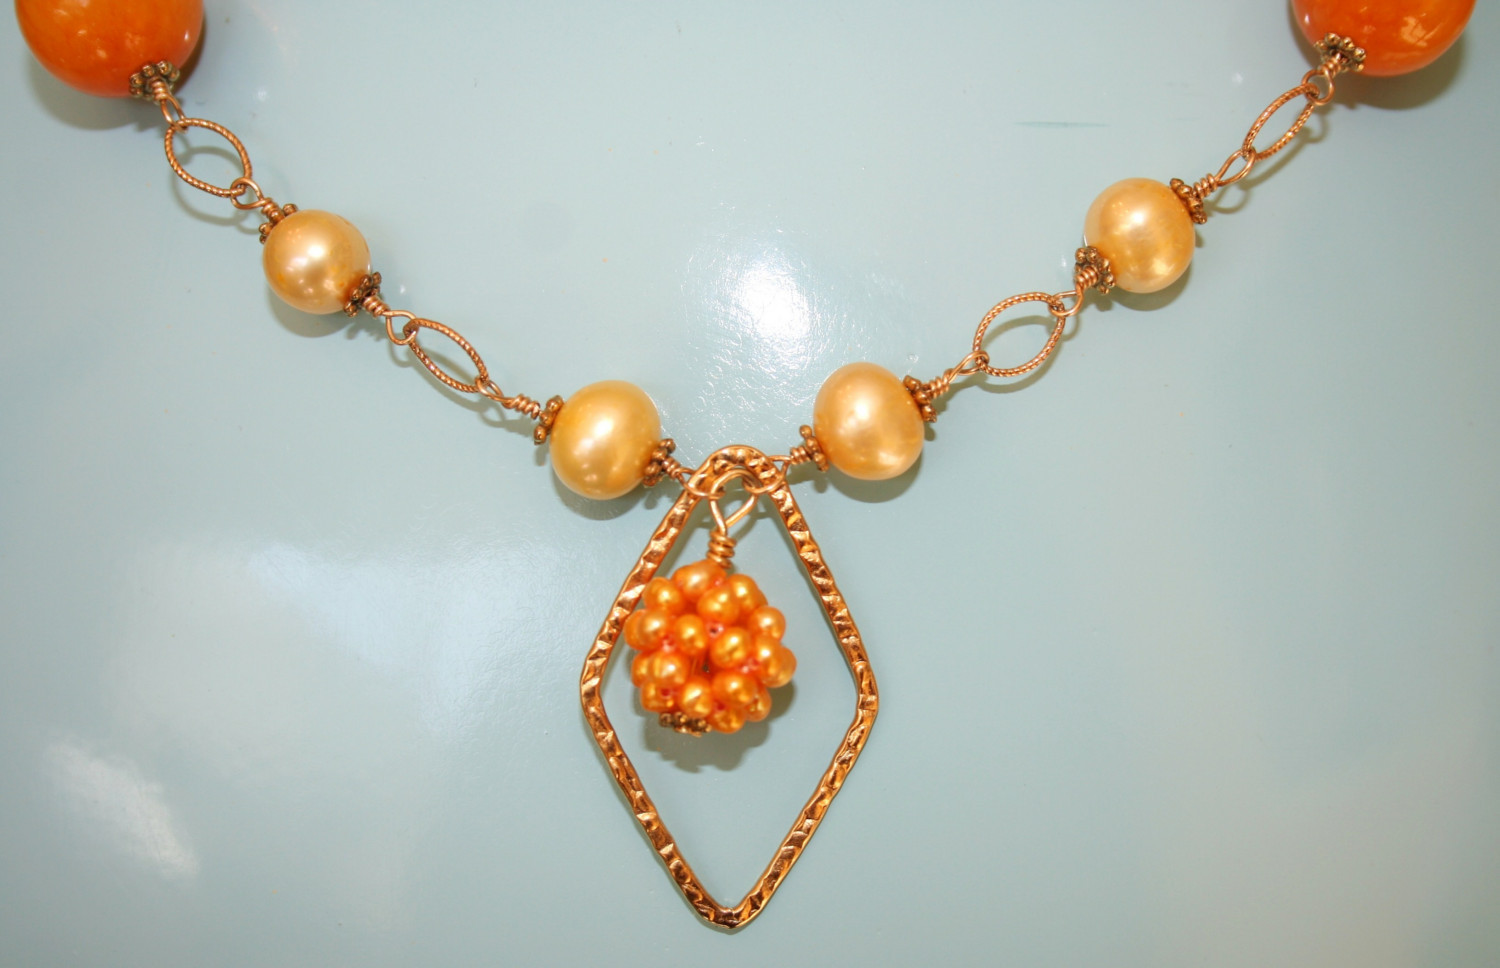 Hand made gold necklace with Aragonite and water pearls